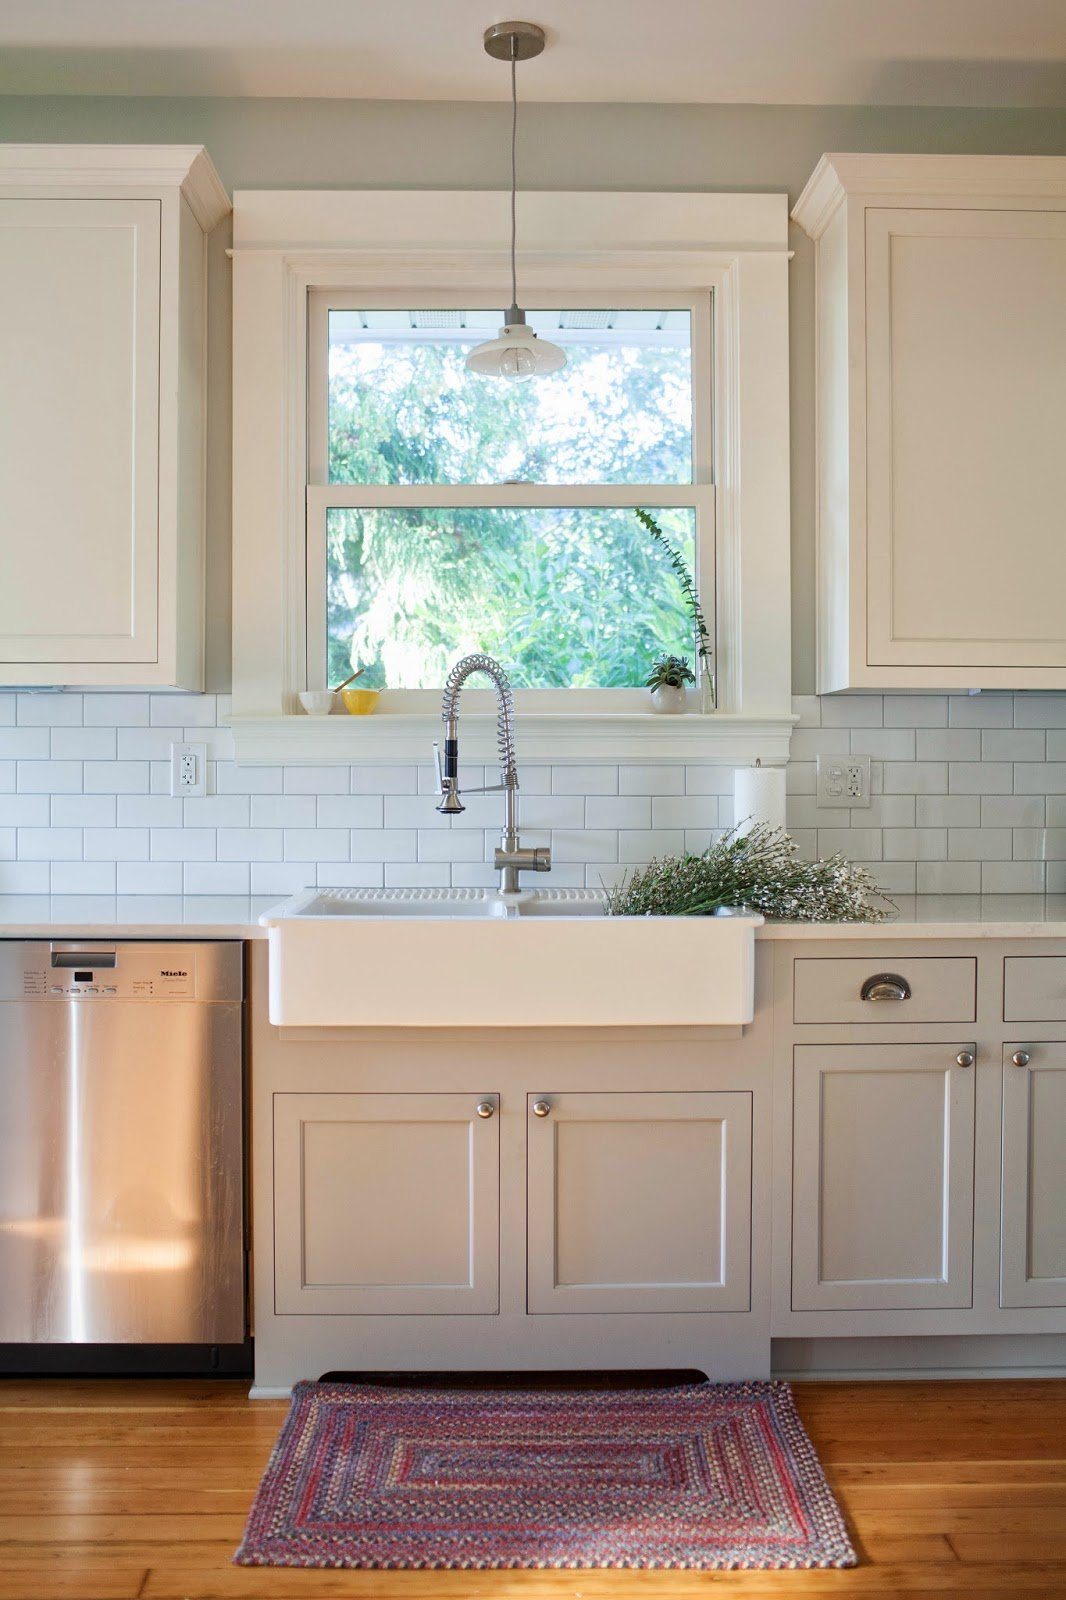 15 Kitchen Transformations That Will Blow Your Mind | Kitchn